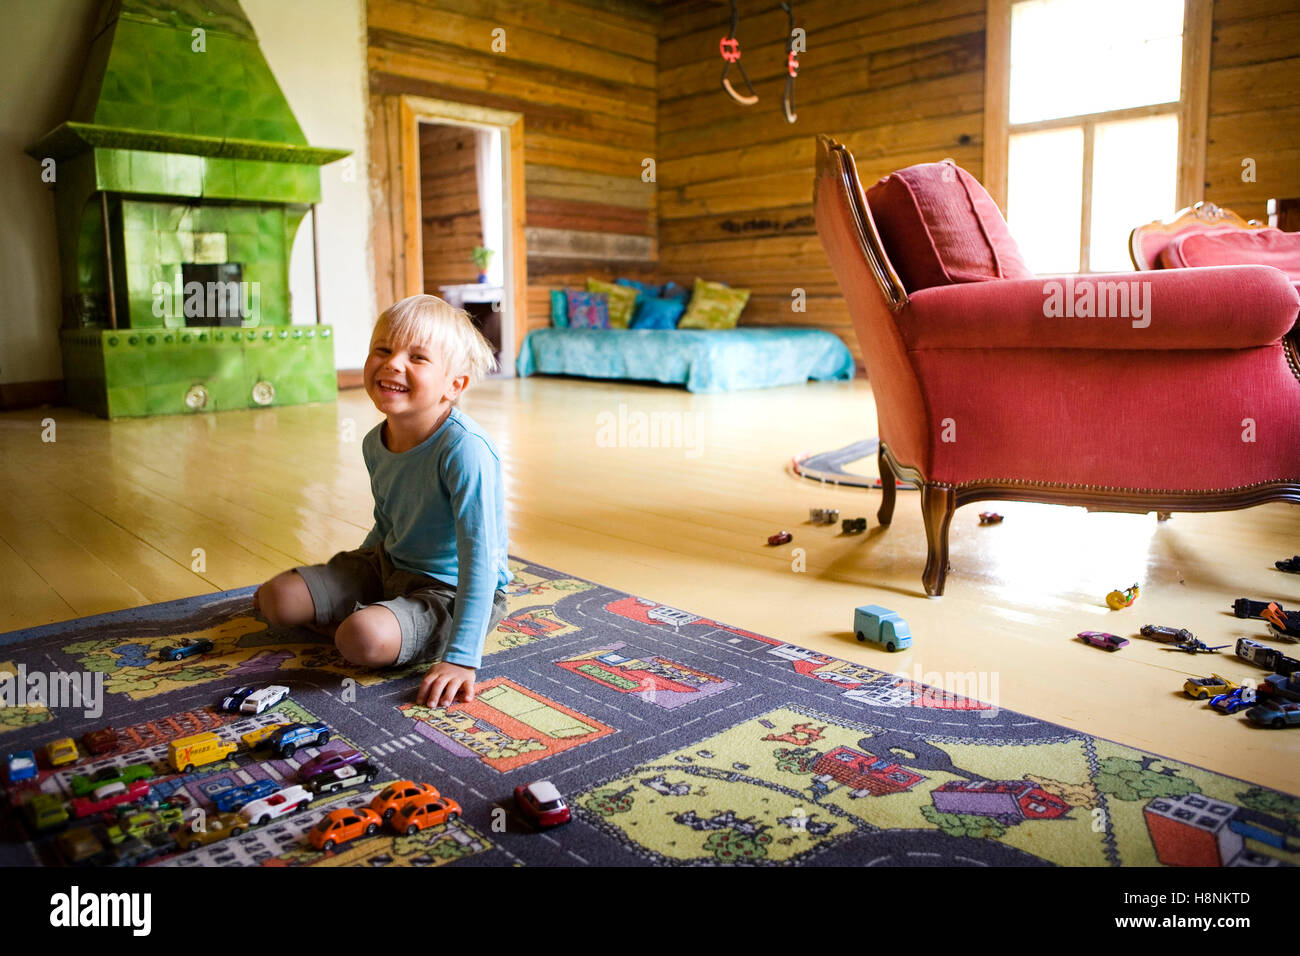 Boy (4-5) kneeling on multi colored carpet in room Stock Photo